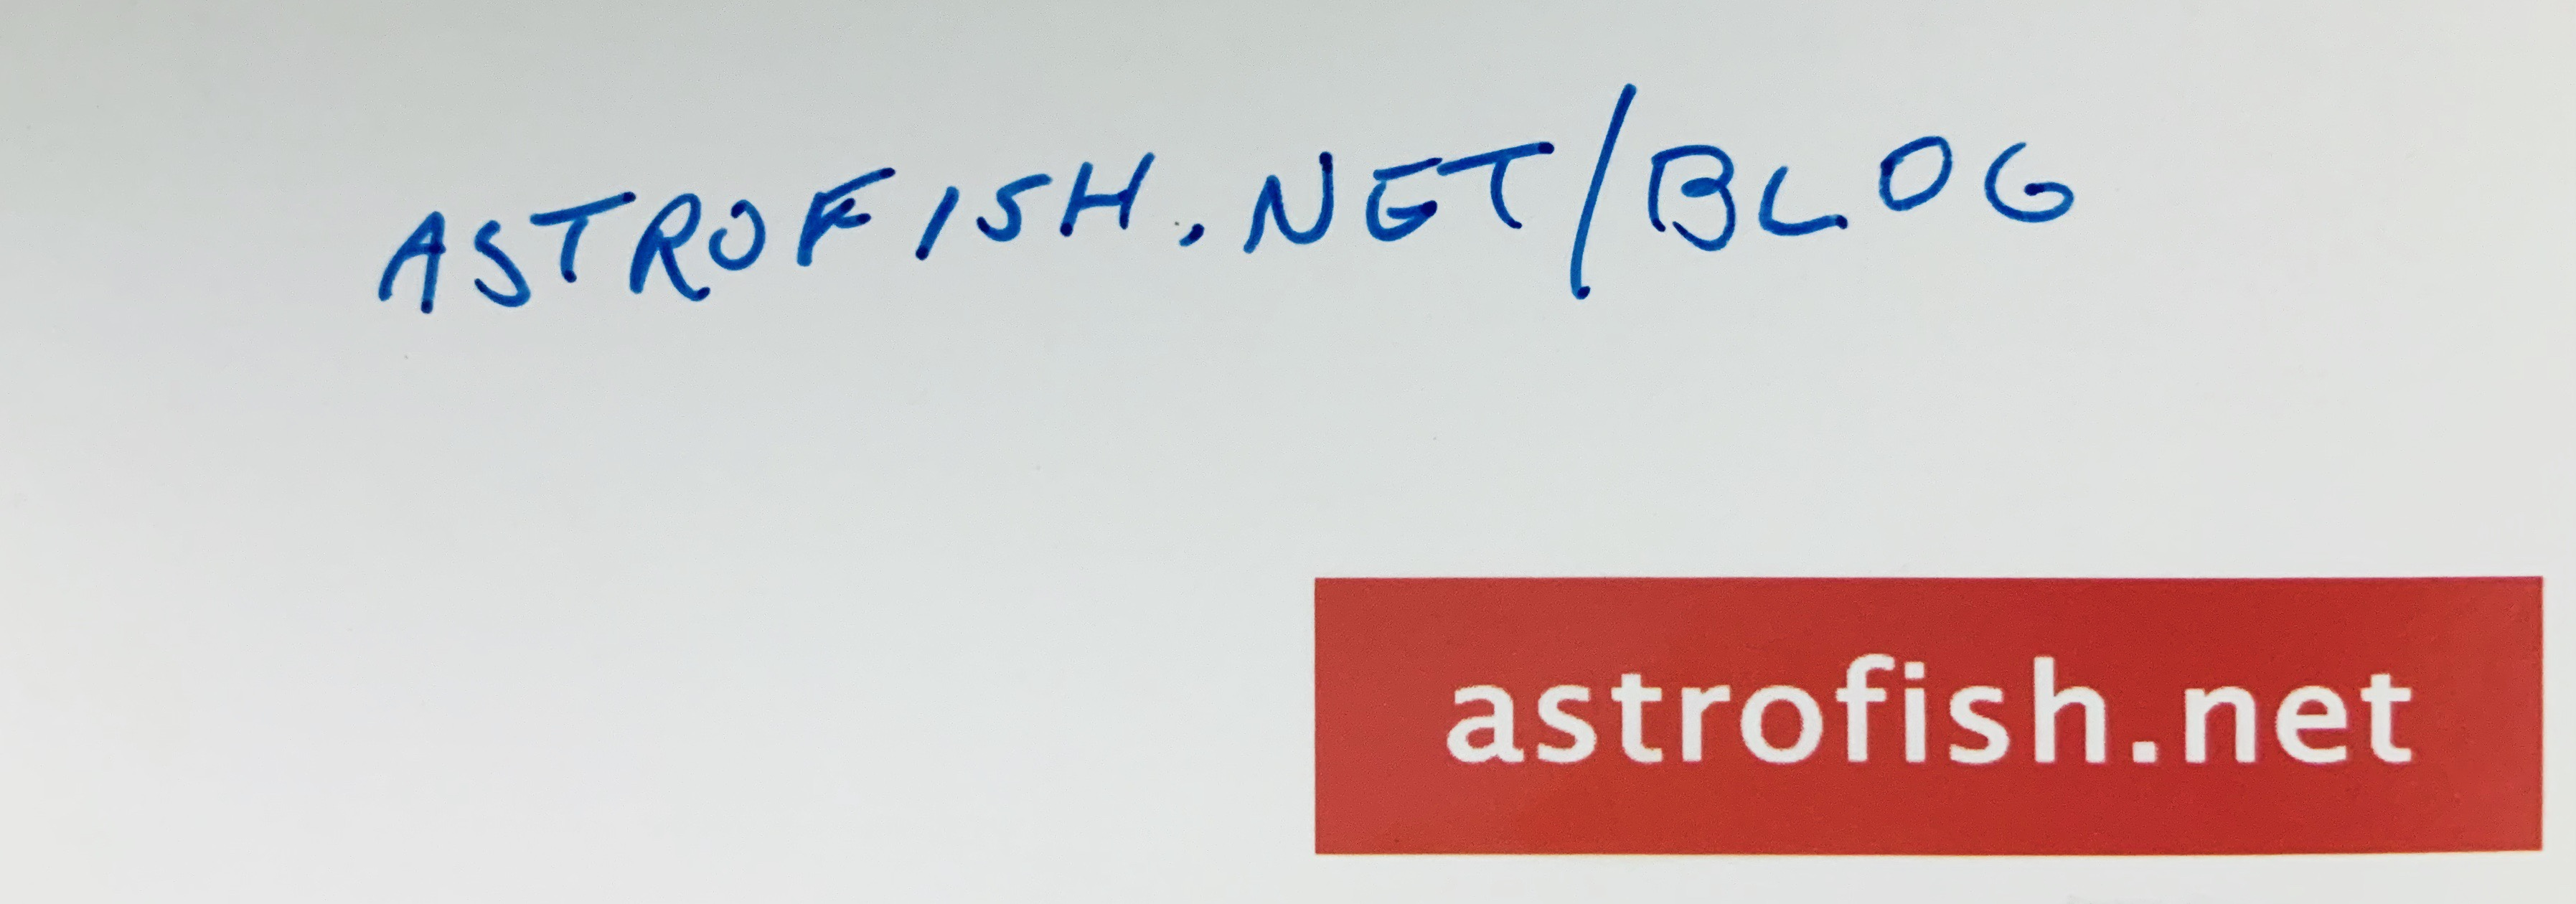 astrofish.net/blog